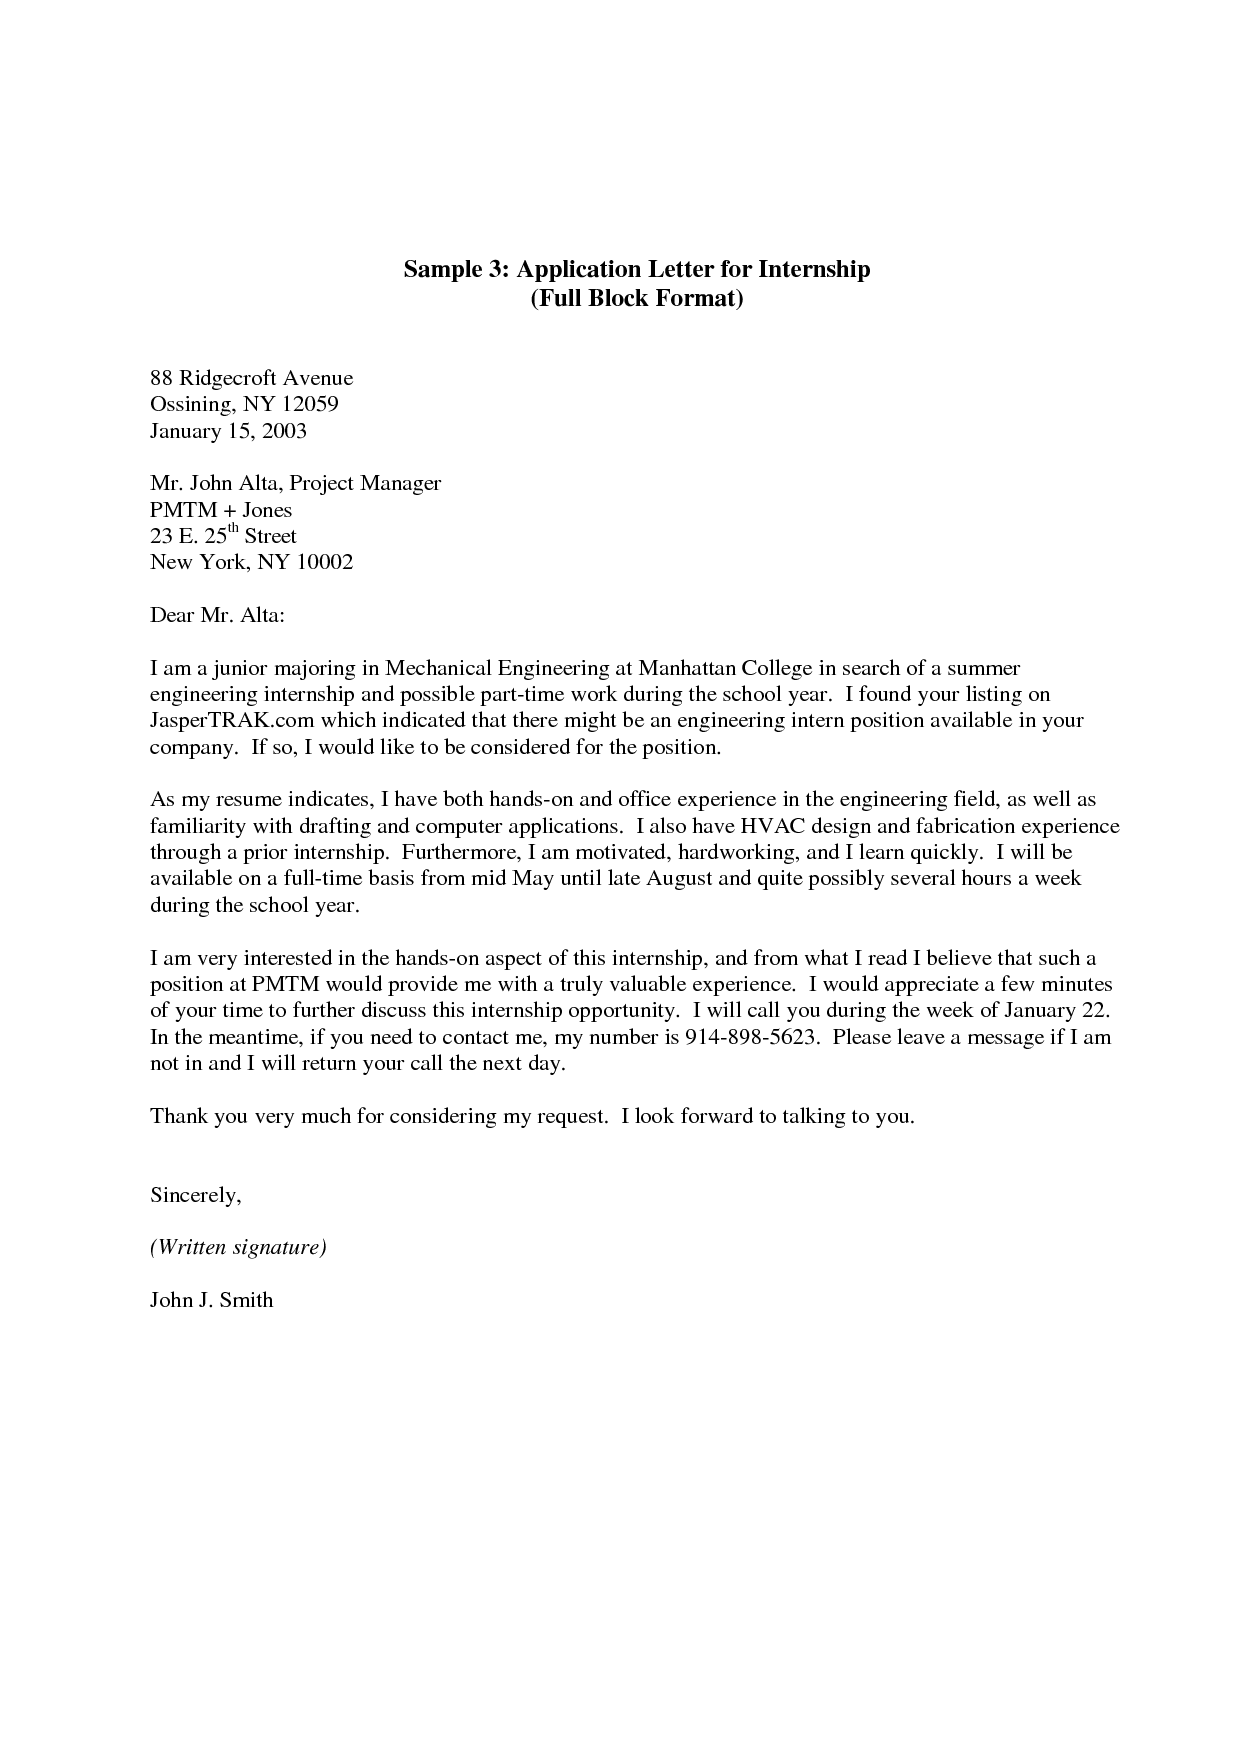 internship application letter - here is a sample cover letter for